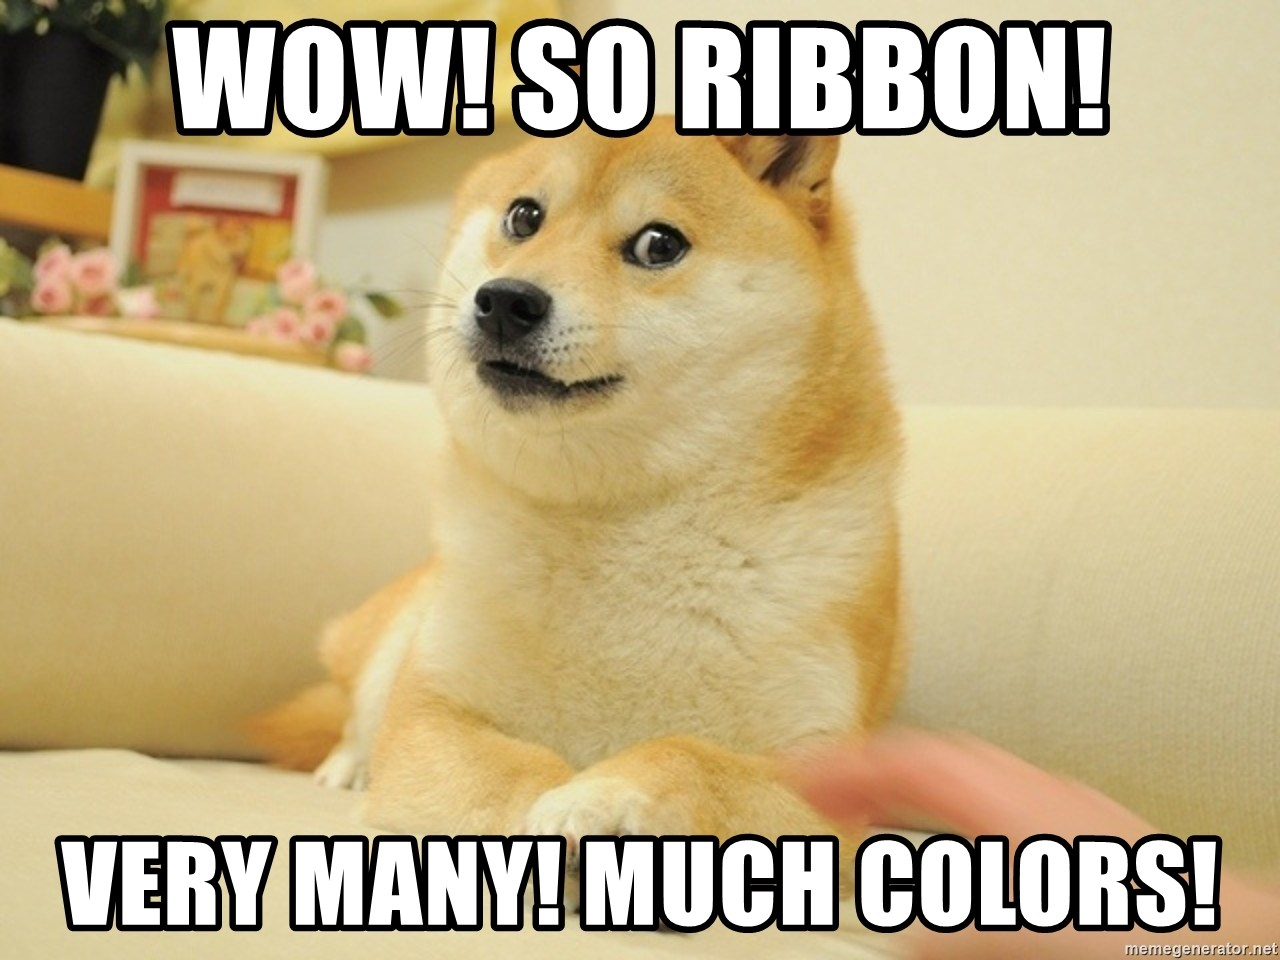 so doge - Wow! So ribbon! Very many! Much colors!